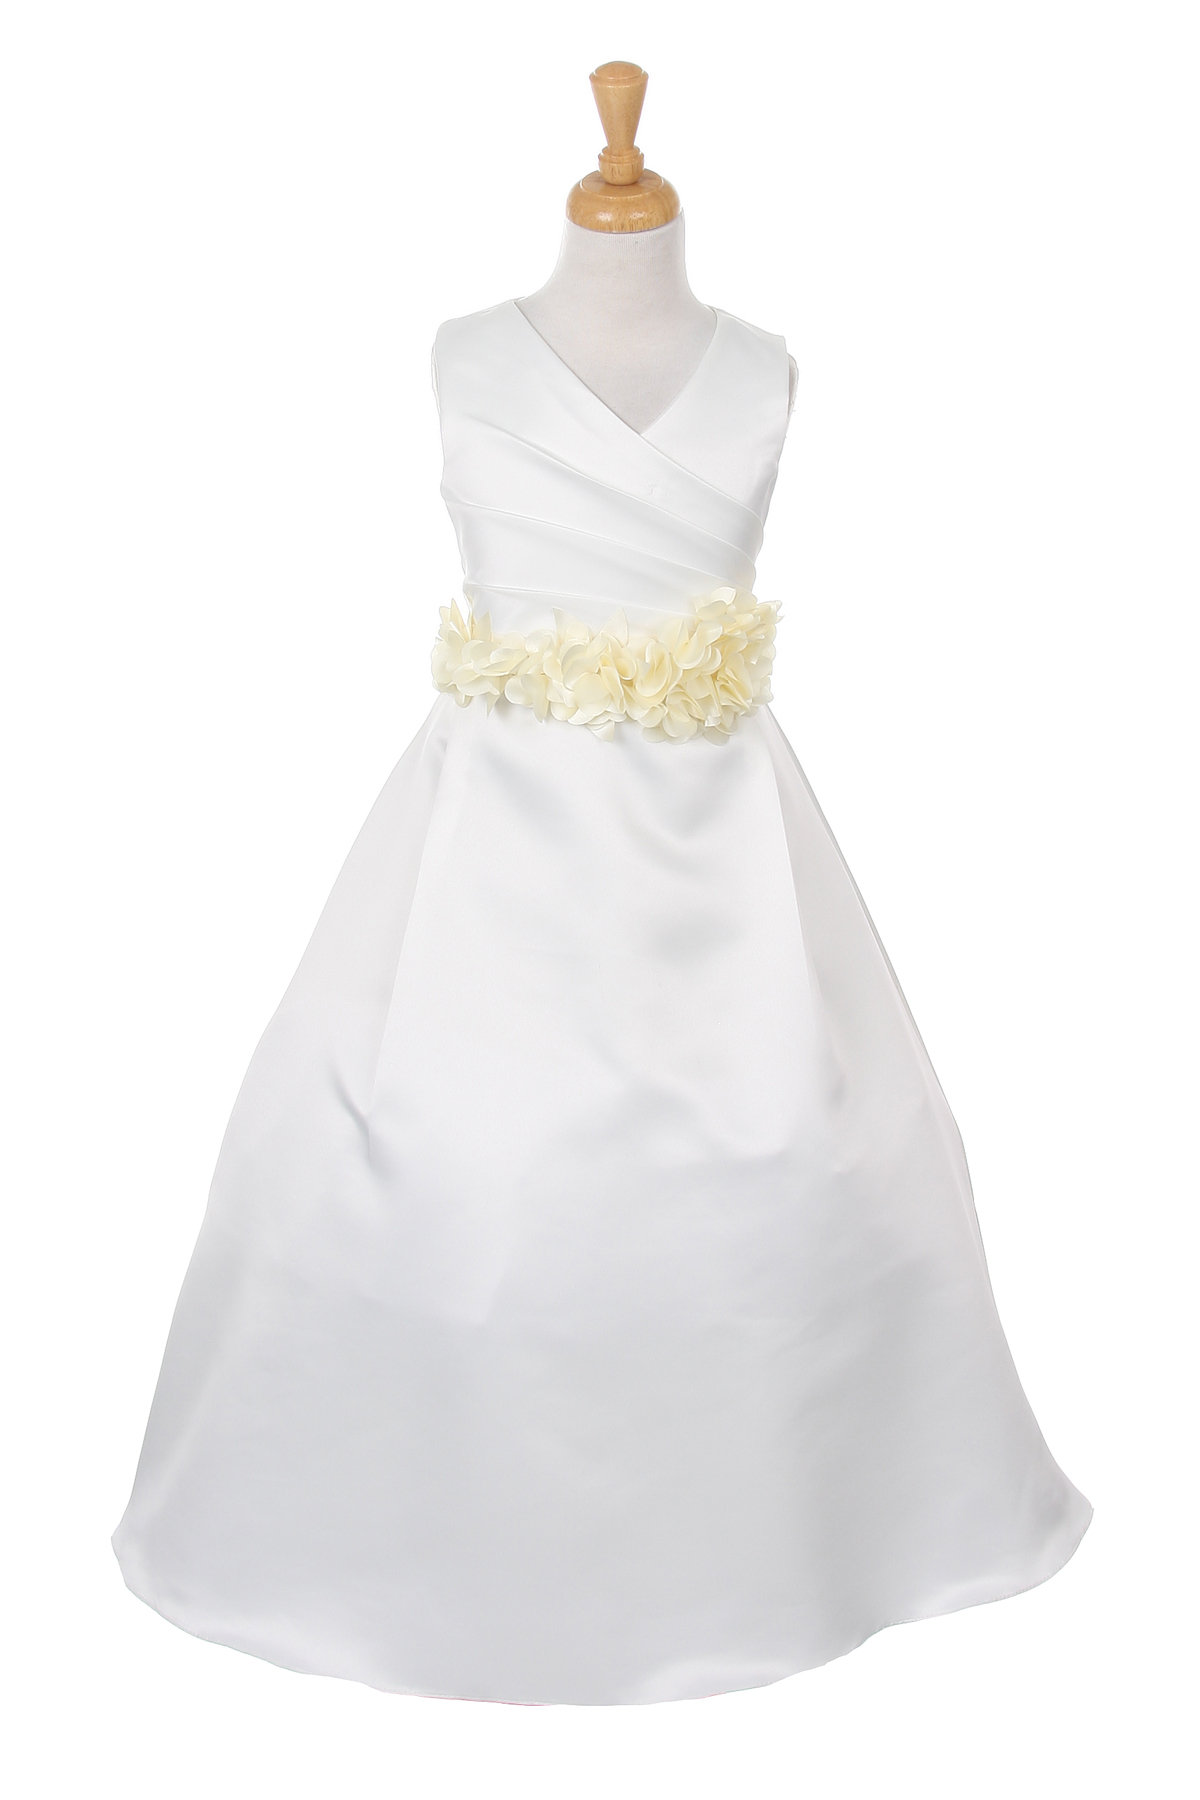 ivory dress with ivory flower sash